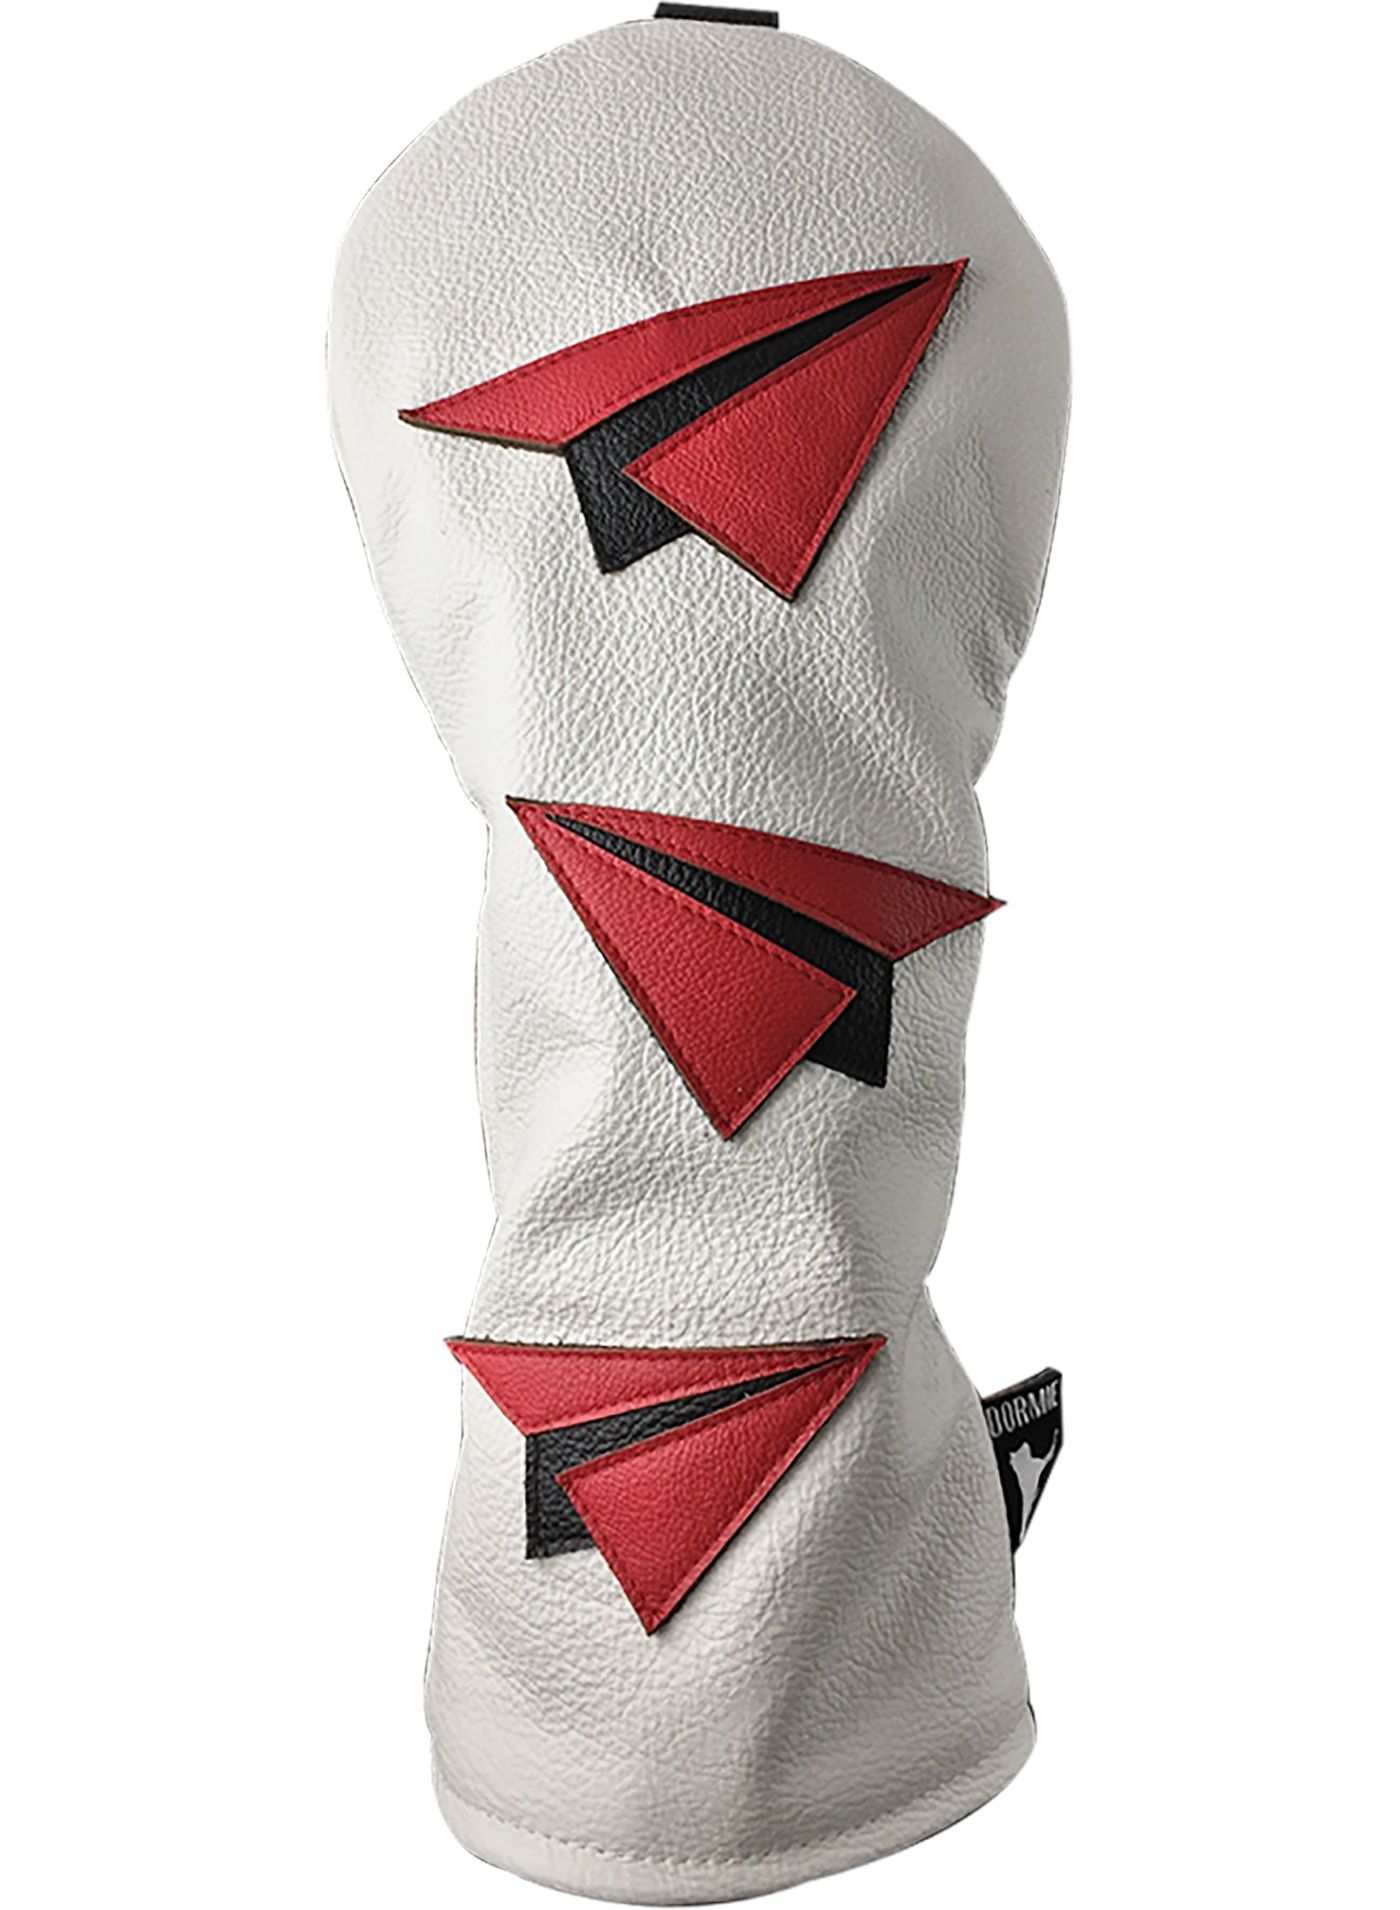 Dormie Workshop Send It! Remove Before Flight Driver Headcover